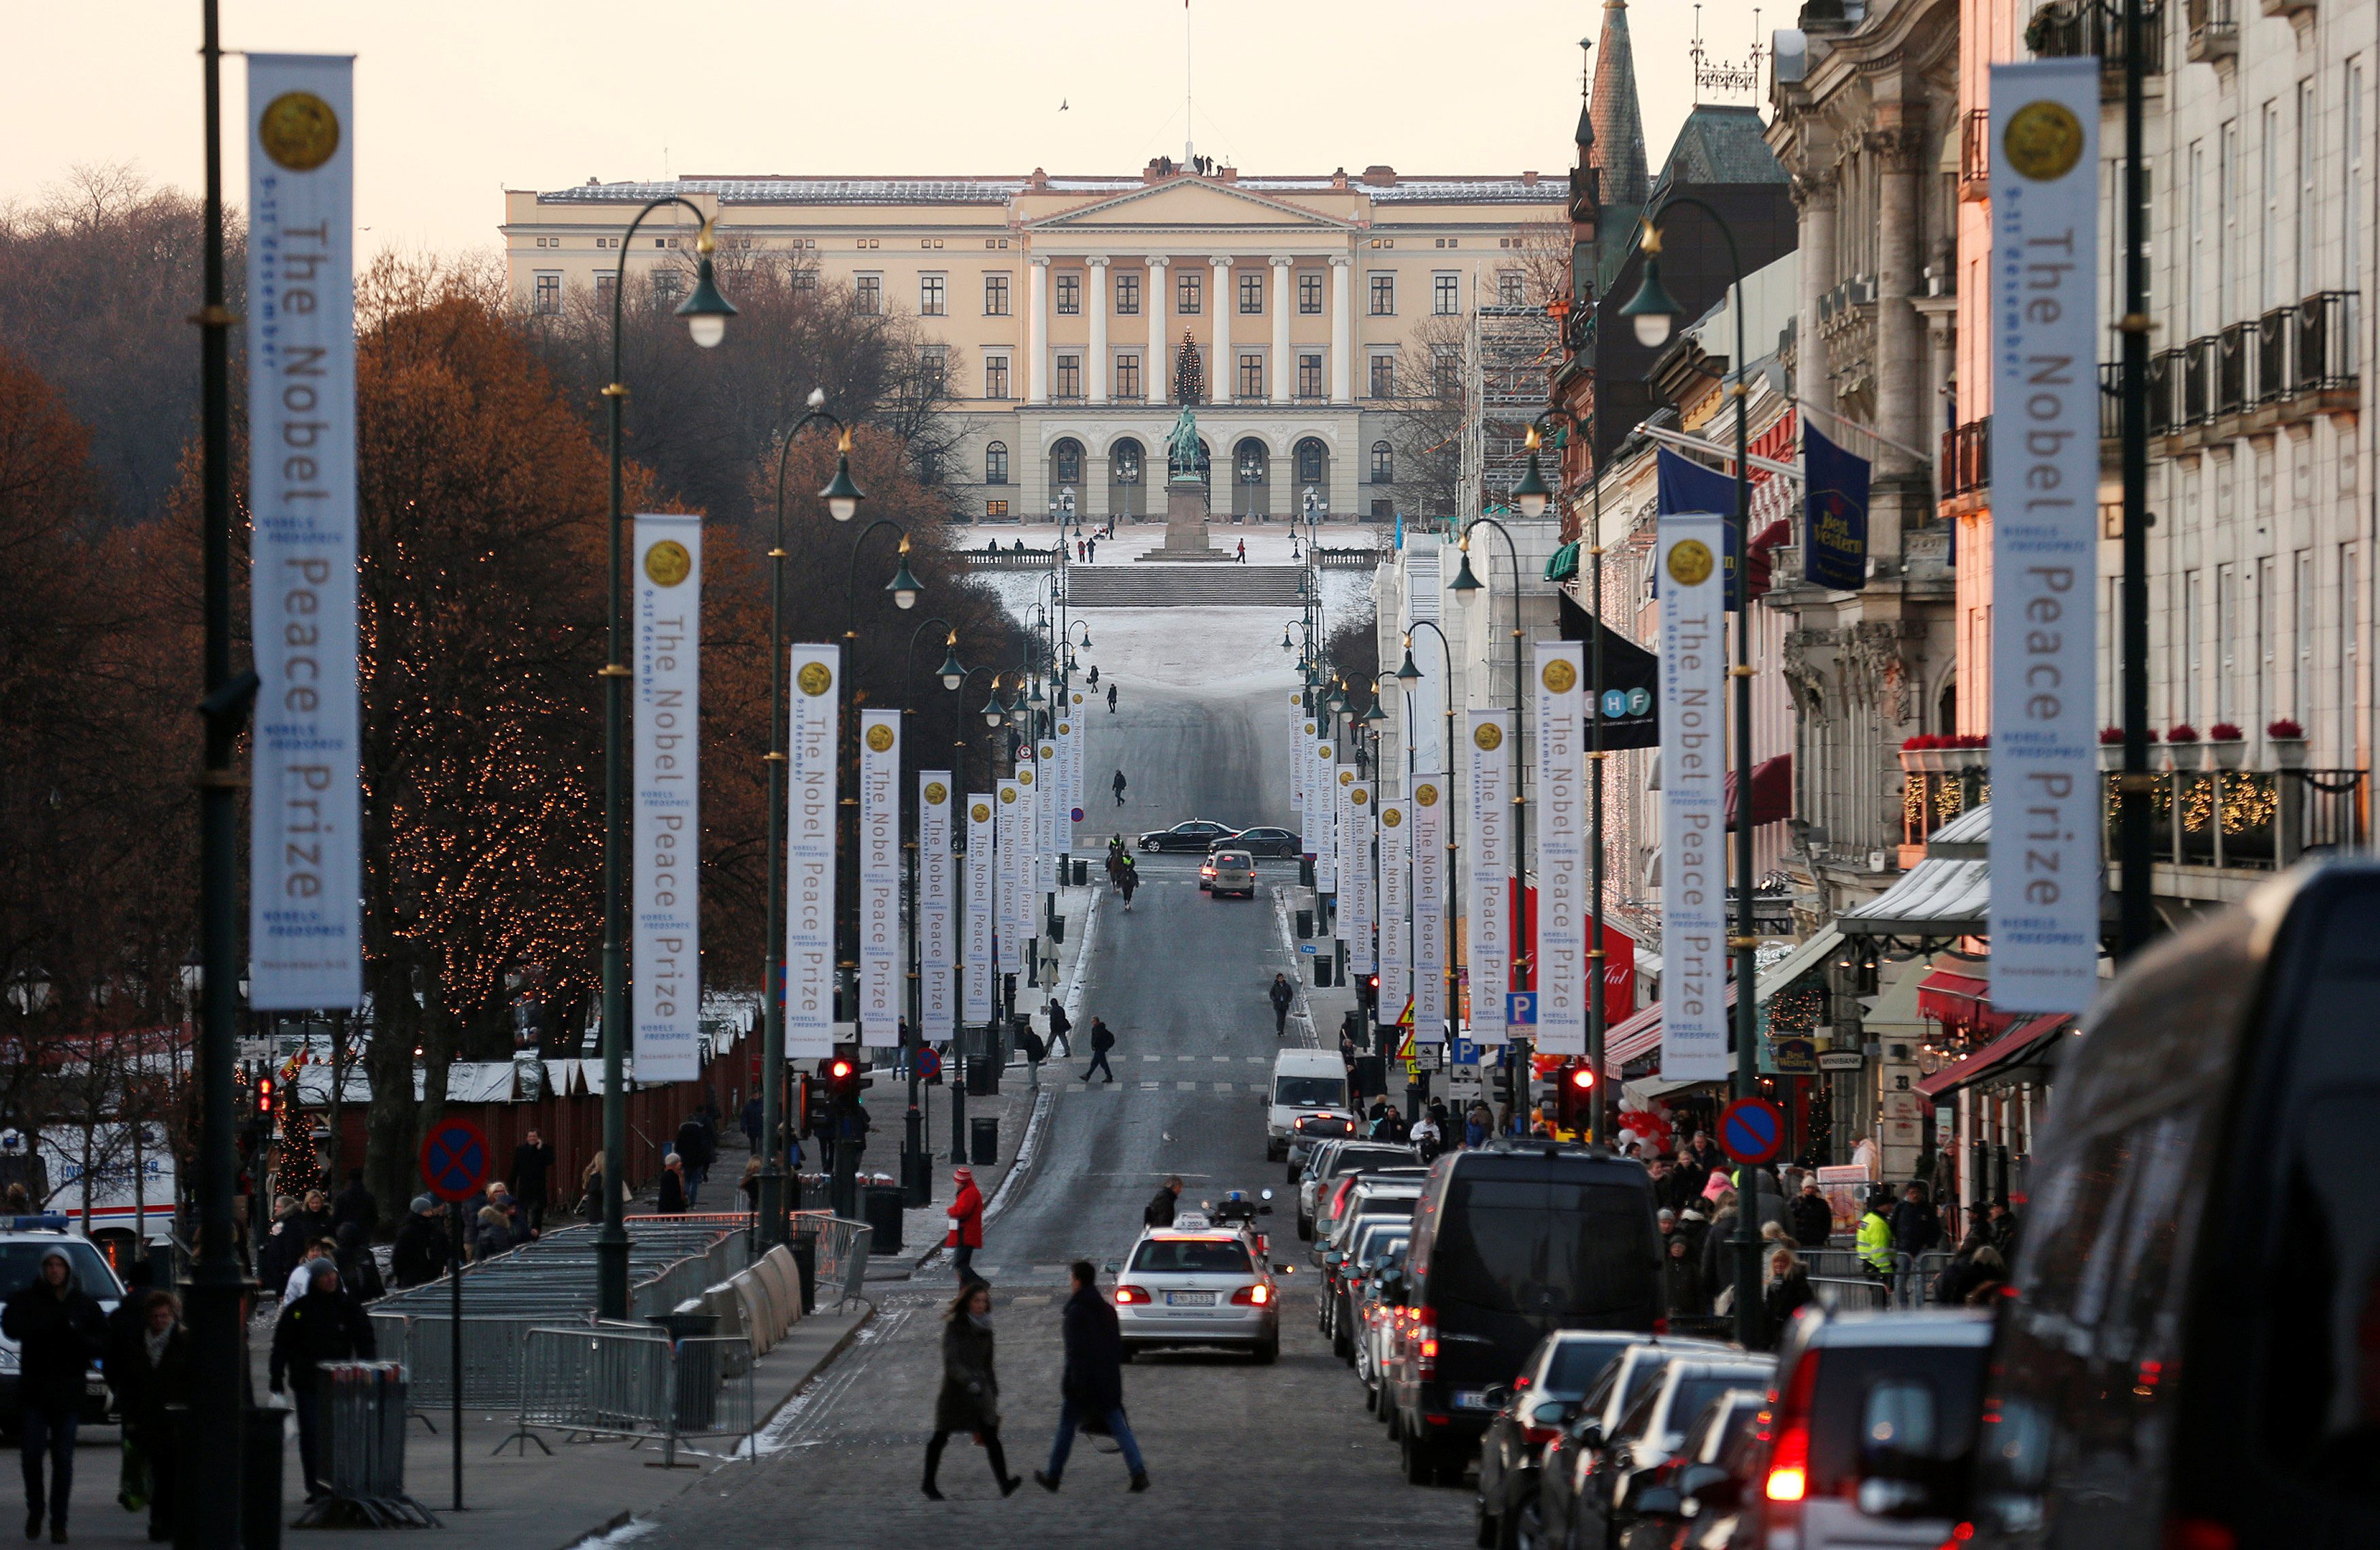 FILE PHOTO -  The Royal Palace is seen at the end of Karl Johans Gate in Oslo December 11, 2012. REUTERS/Suzanne Plunkett/File Photo